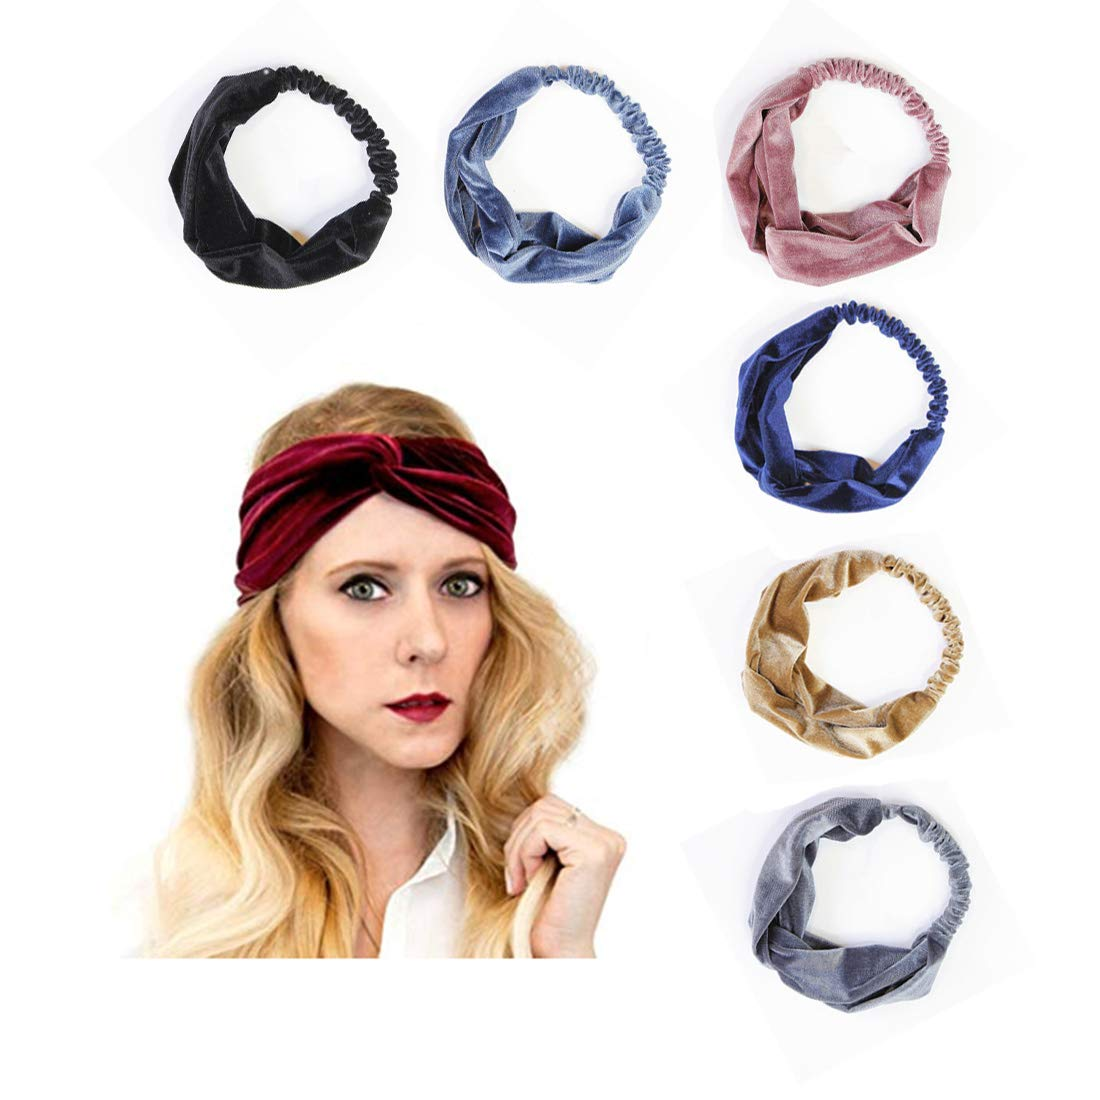 Headbands for Women Velvet Elastic Headband,7 Pcs Women's Adjustable criss cross head wrap hair band Twisted Soft Turban Band Headwrap Hair Accessories